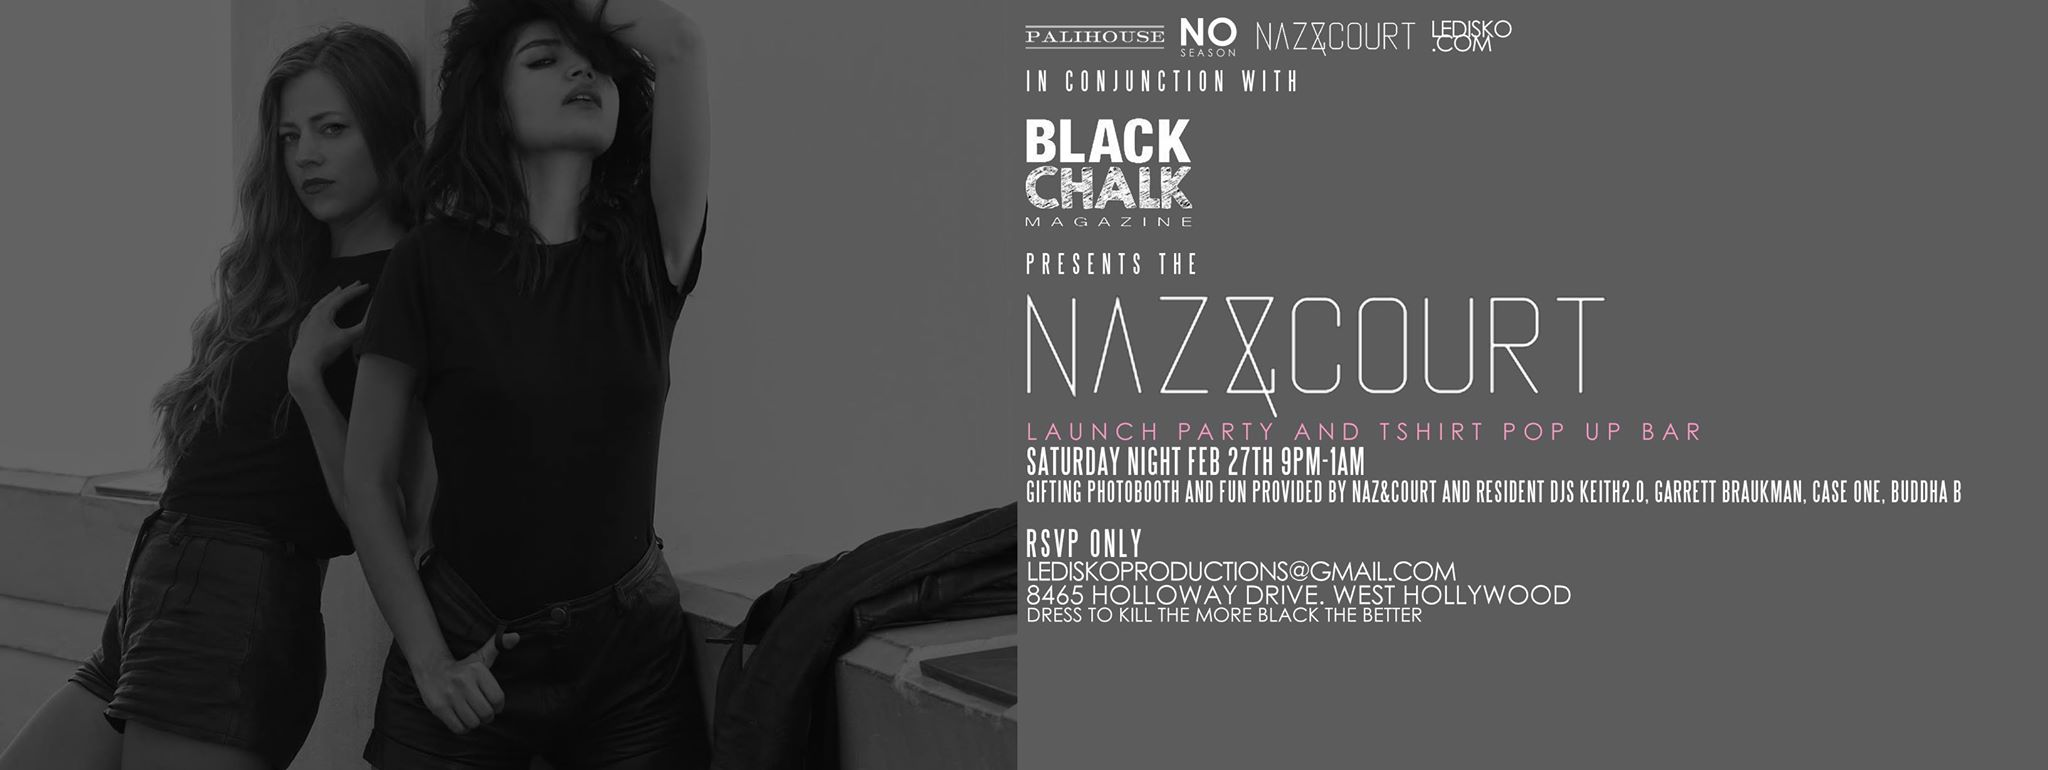 Black Chalk Magazine / Naz&Court